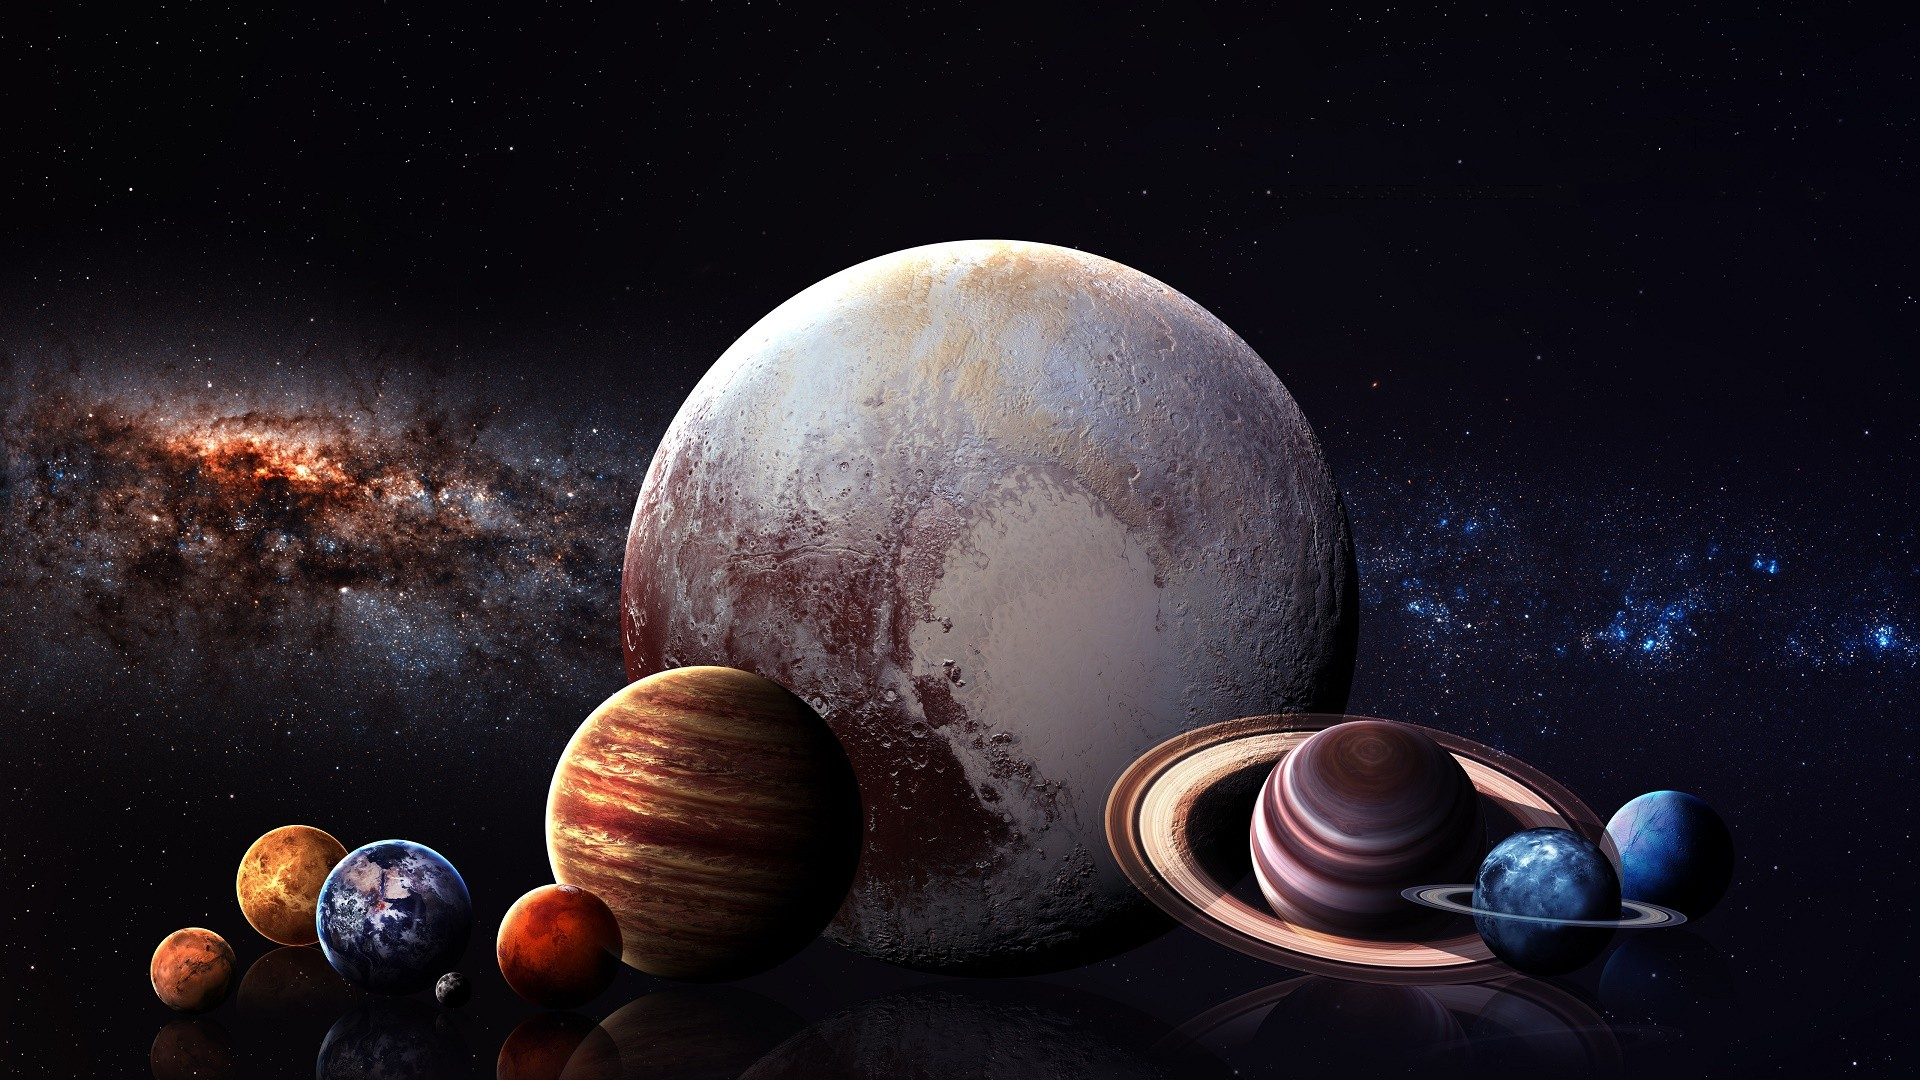 Earth And Moon 3d Wallpaper Solar System Wallpaper 04 1920x1080